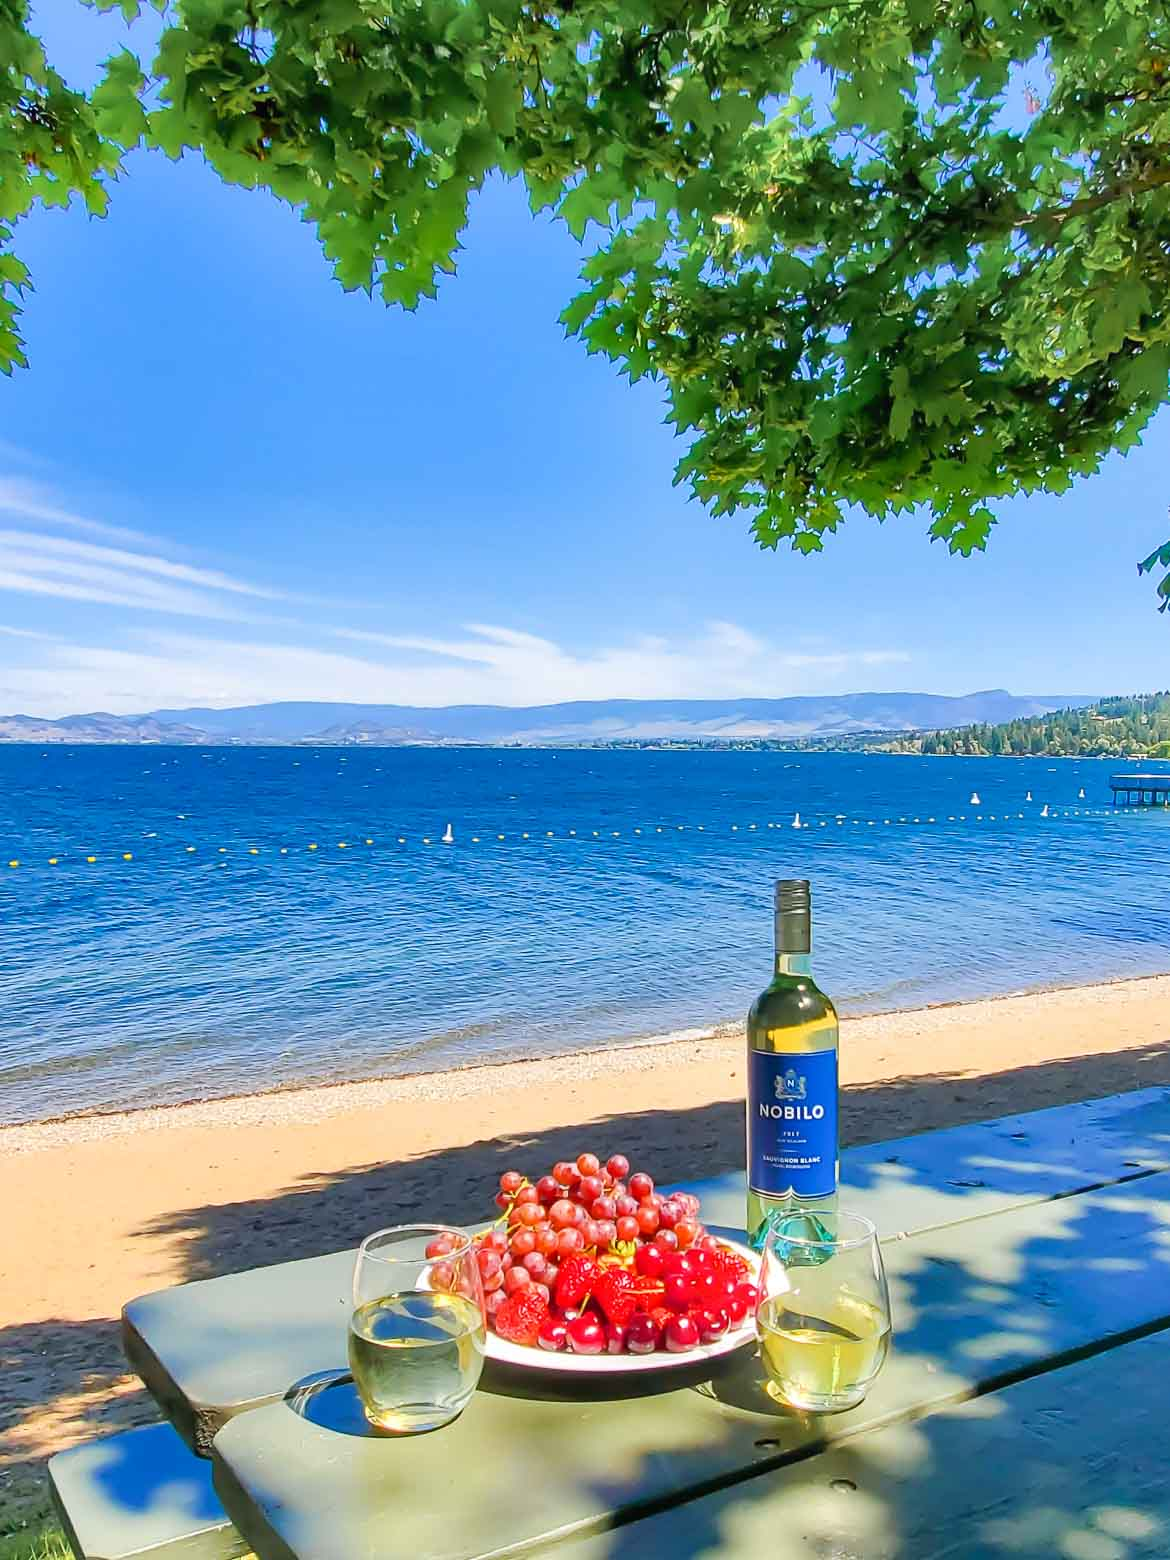 Nobilo Sauvignon Blanc white wine and fresh fruit by the beach on a mountain lake